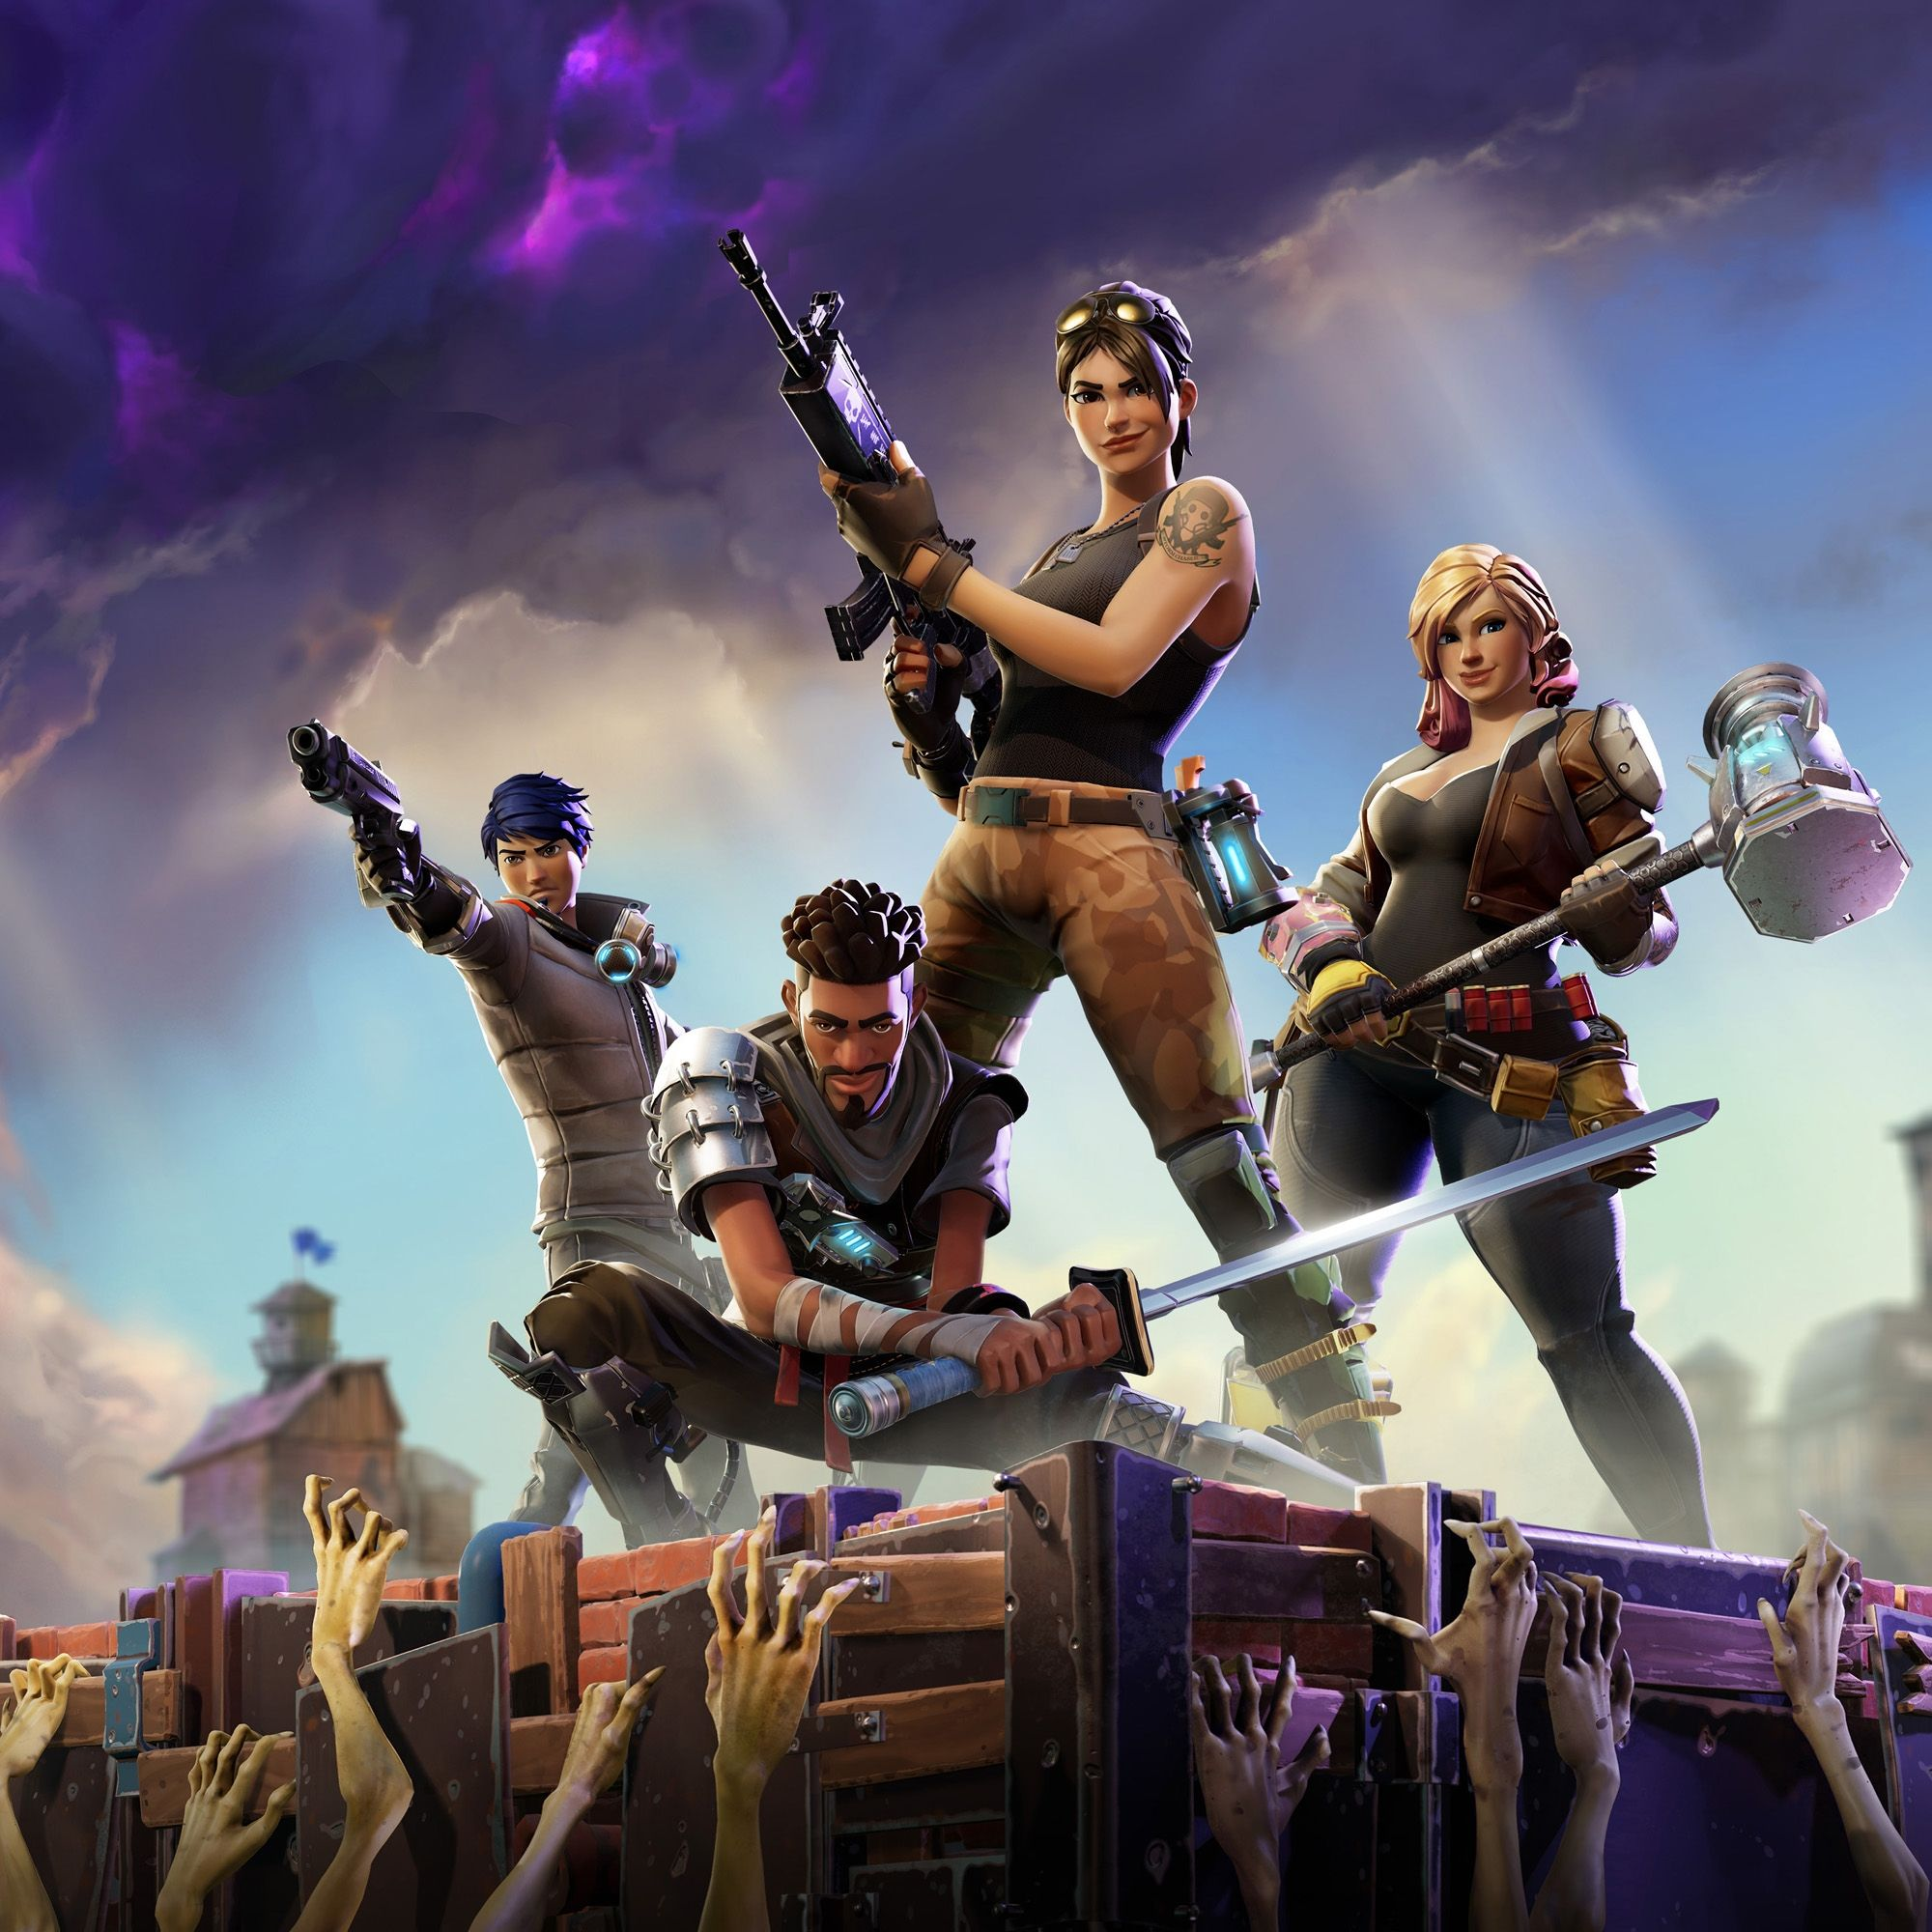 Fortnite background clipart graphic black and white stock Charerters Fortnite Phone Wallpapers - Top Free Charerters Fortnite ... graphic black and white stock